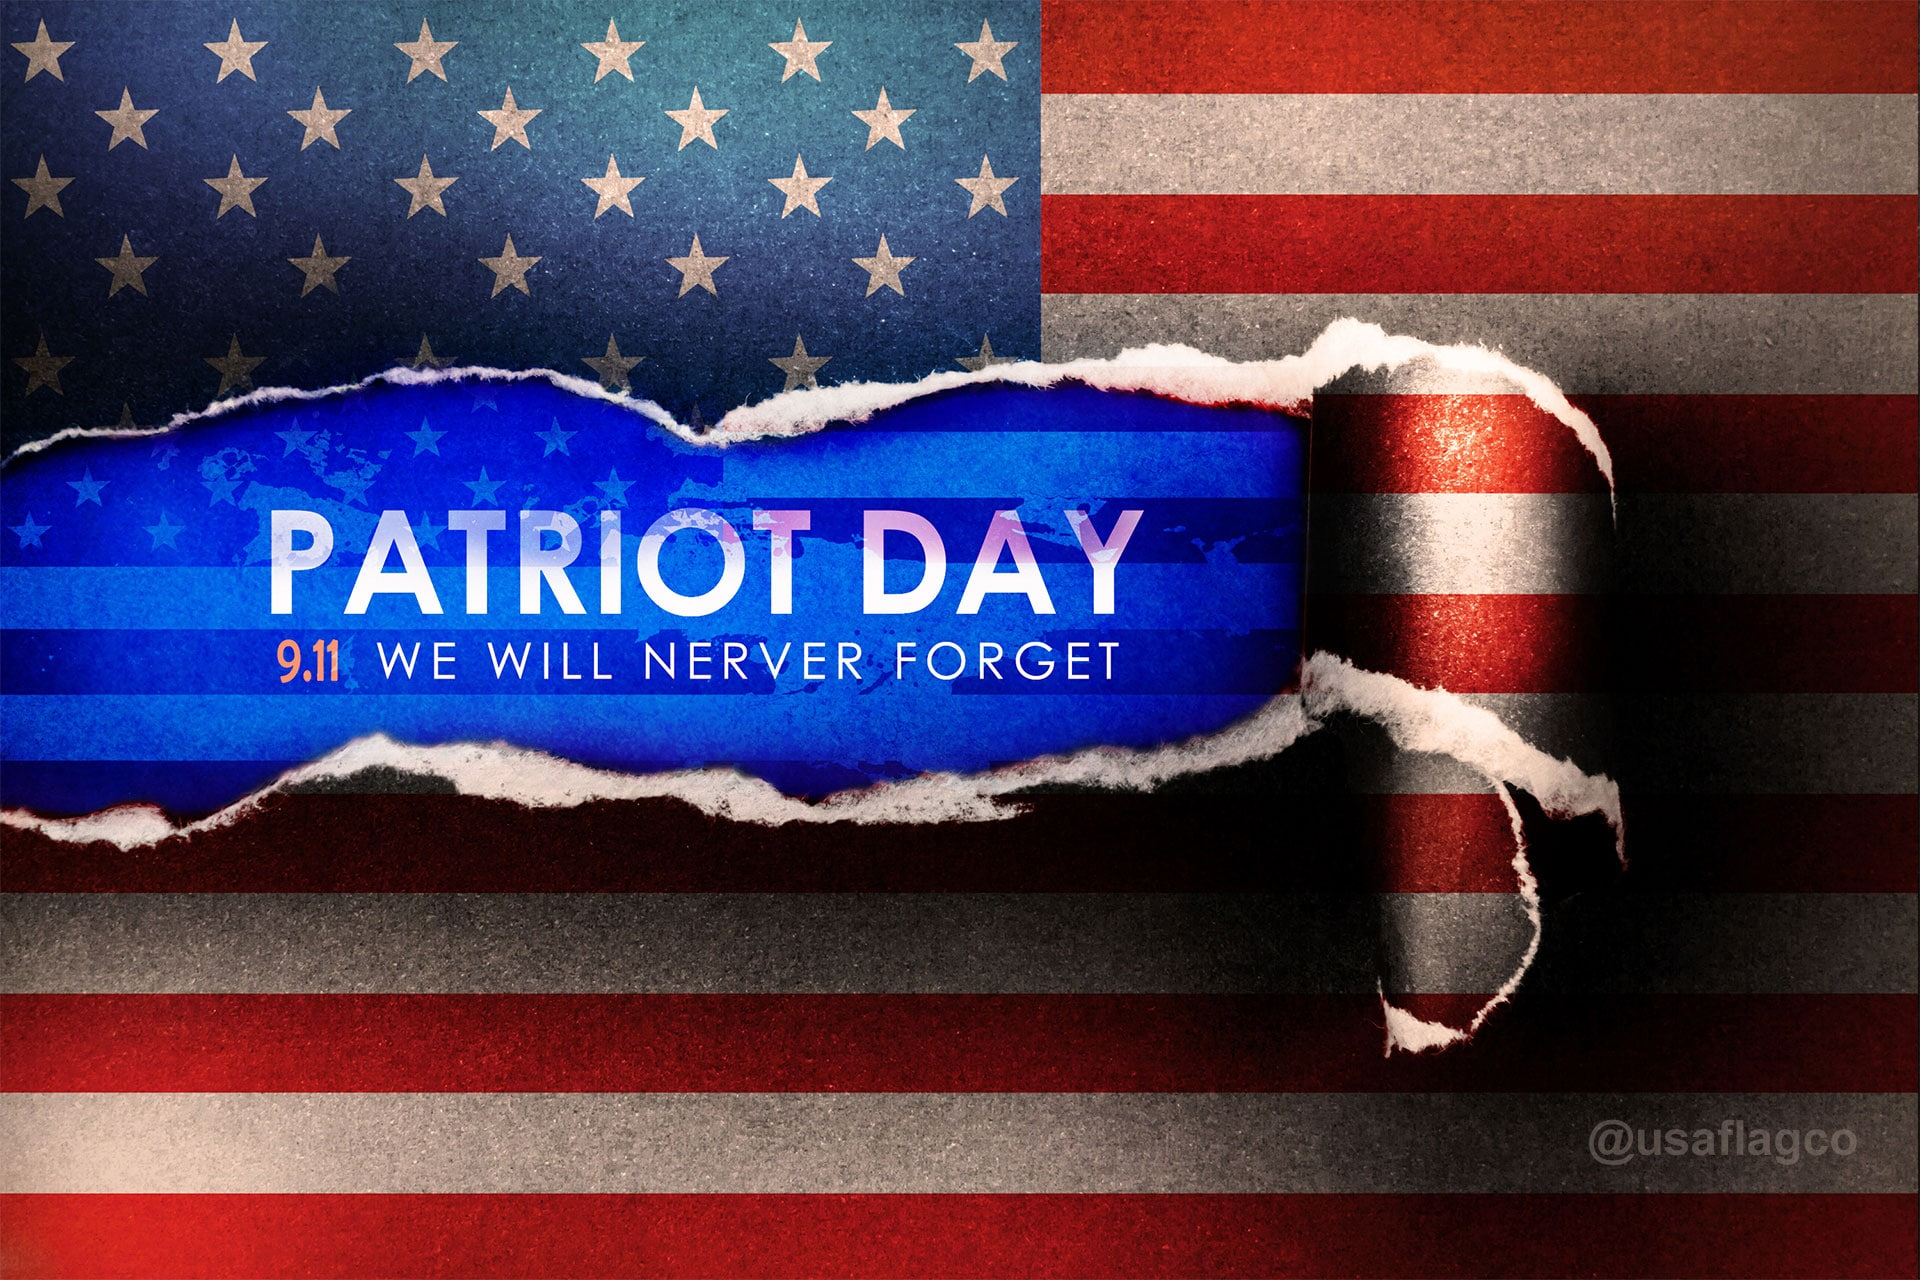 Patriot Day 9.11 -- We Will Never Forget!